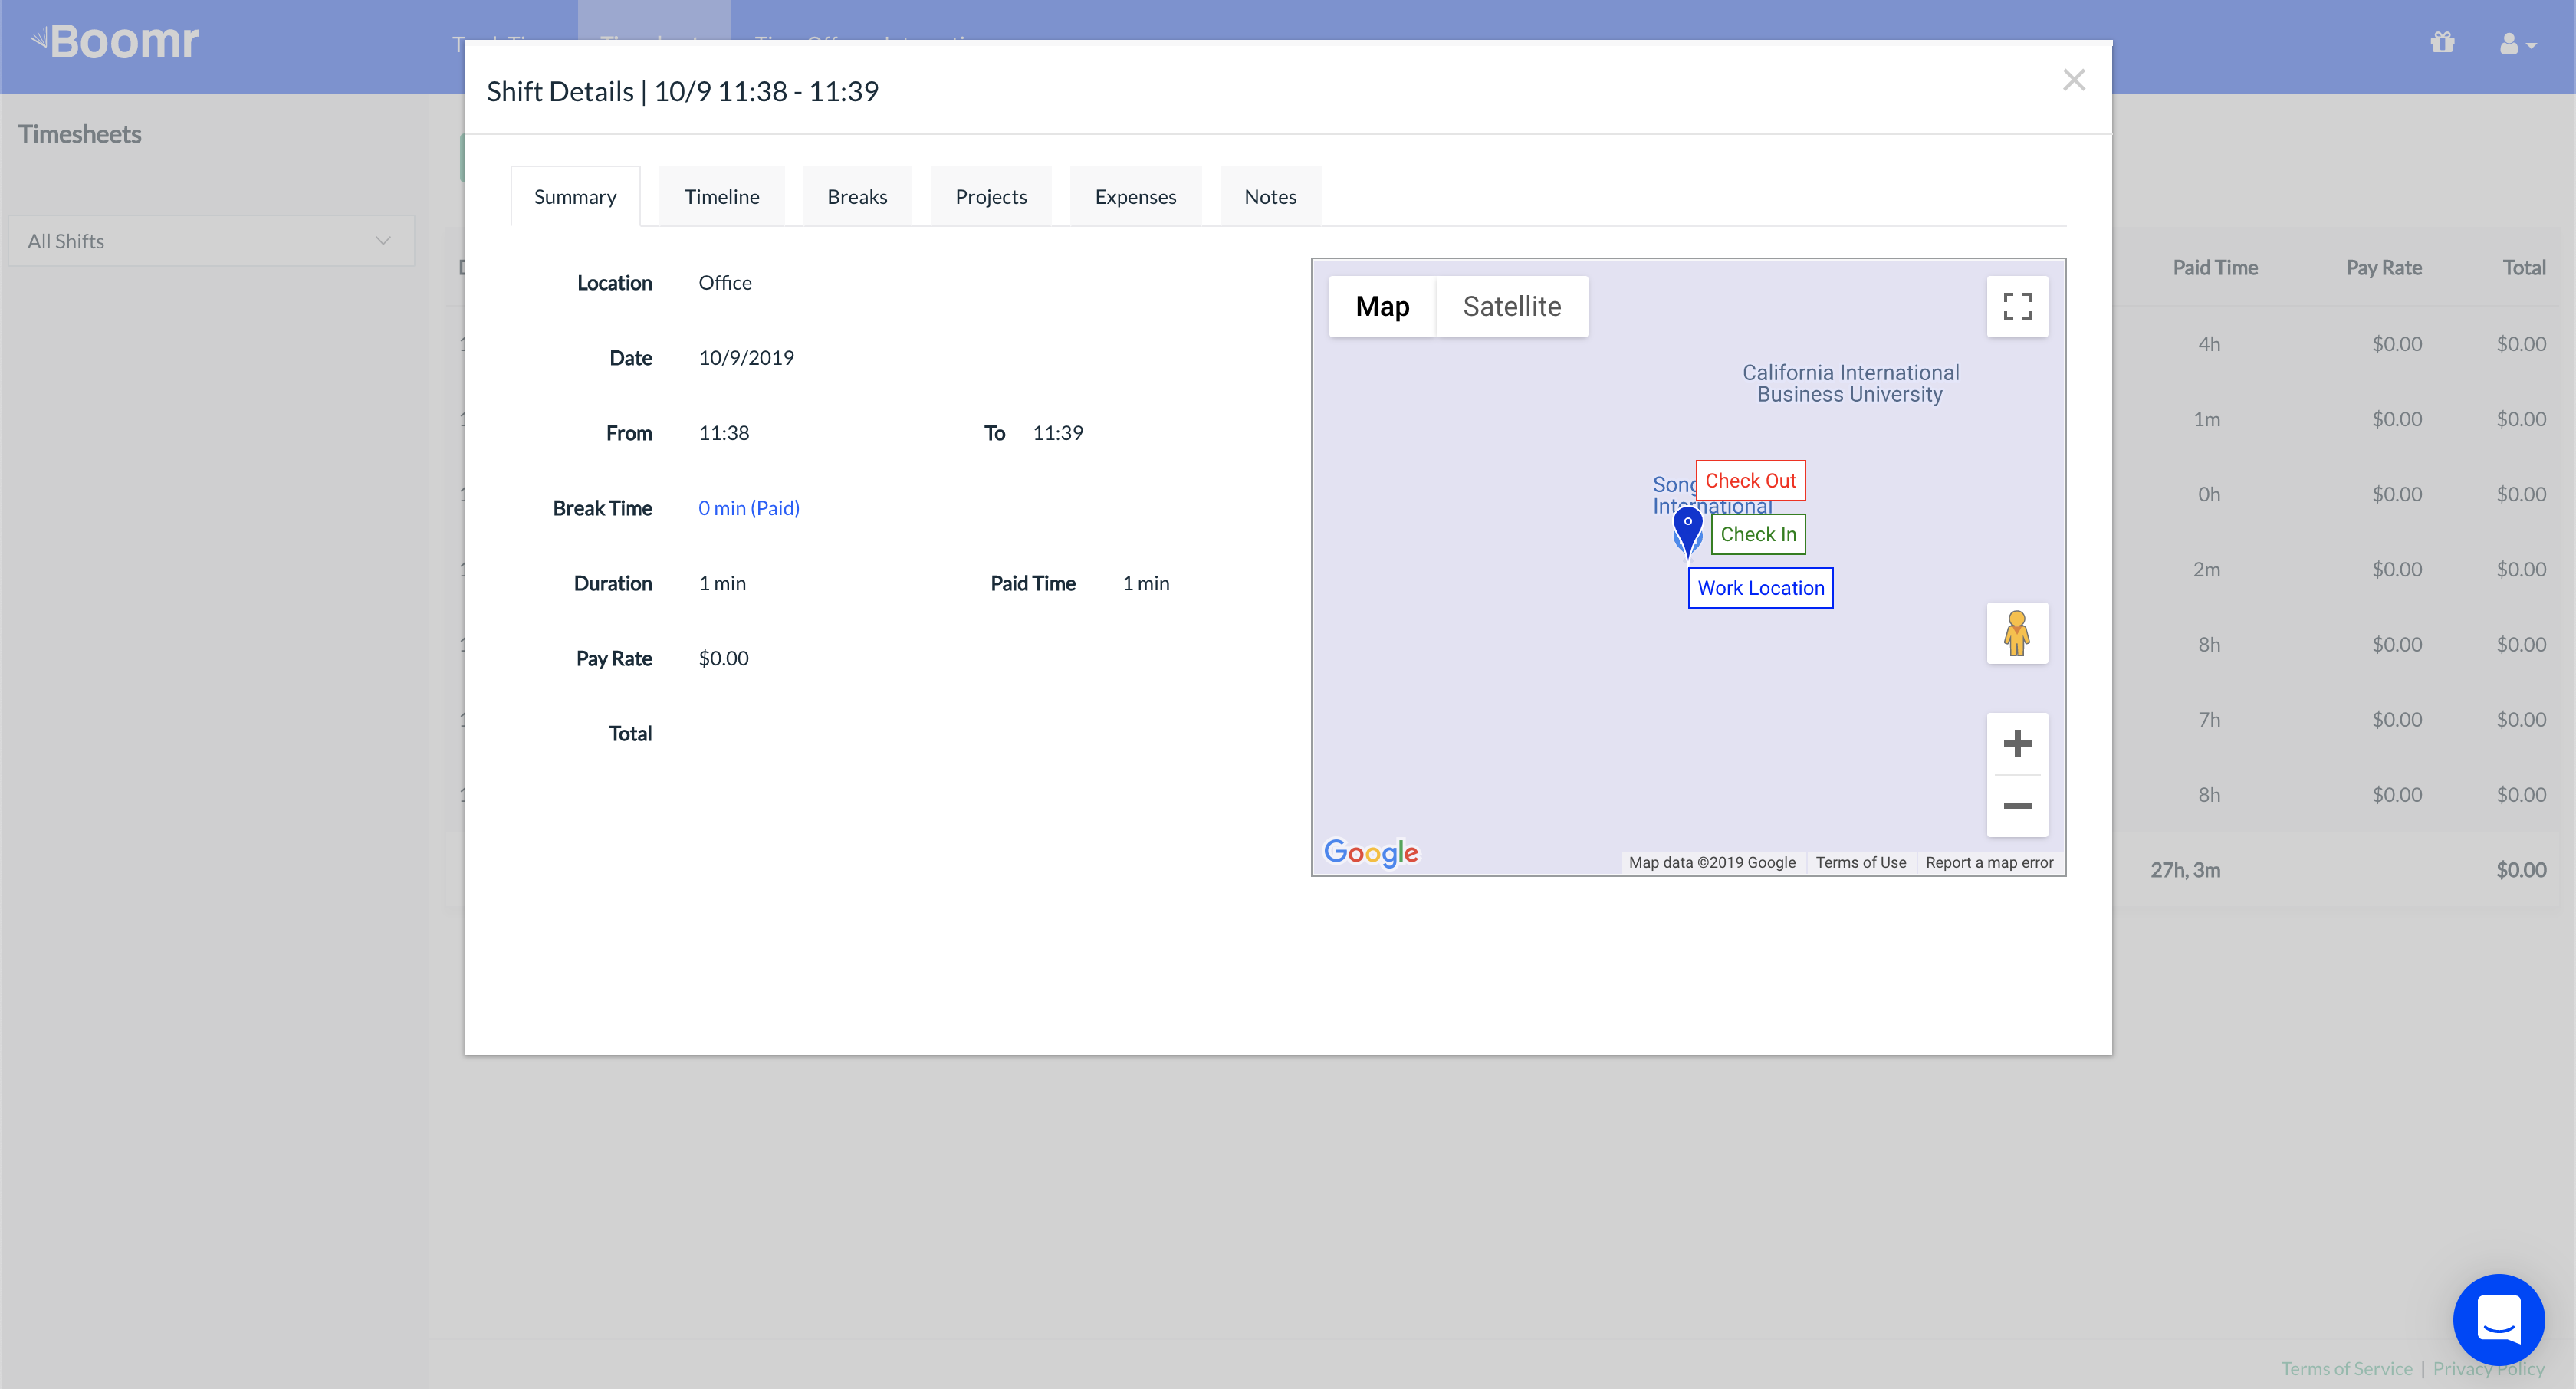 Screenshot showing how to view more information about a shift within Shift Details